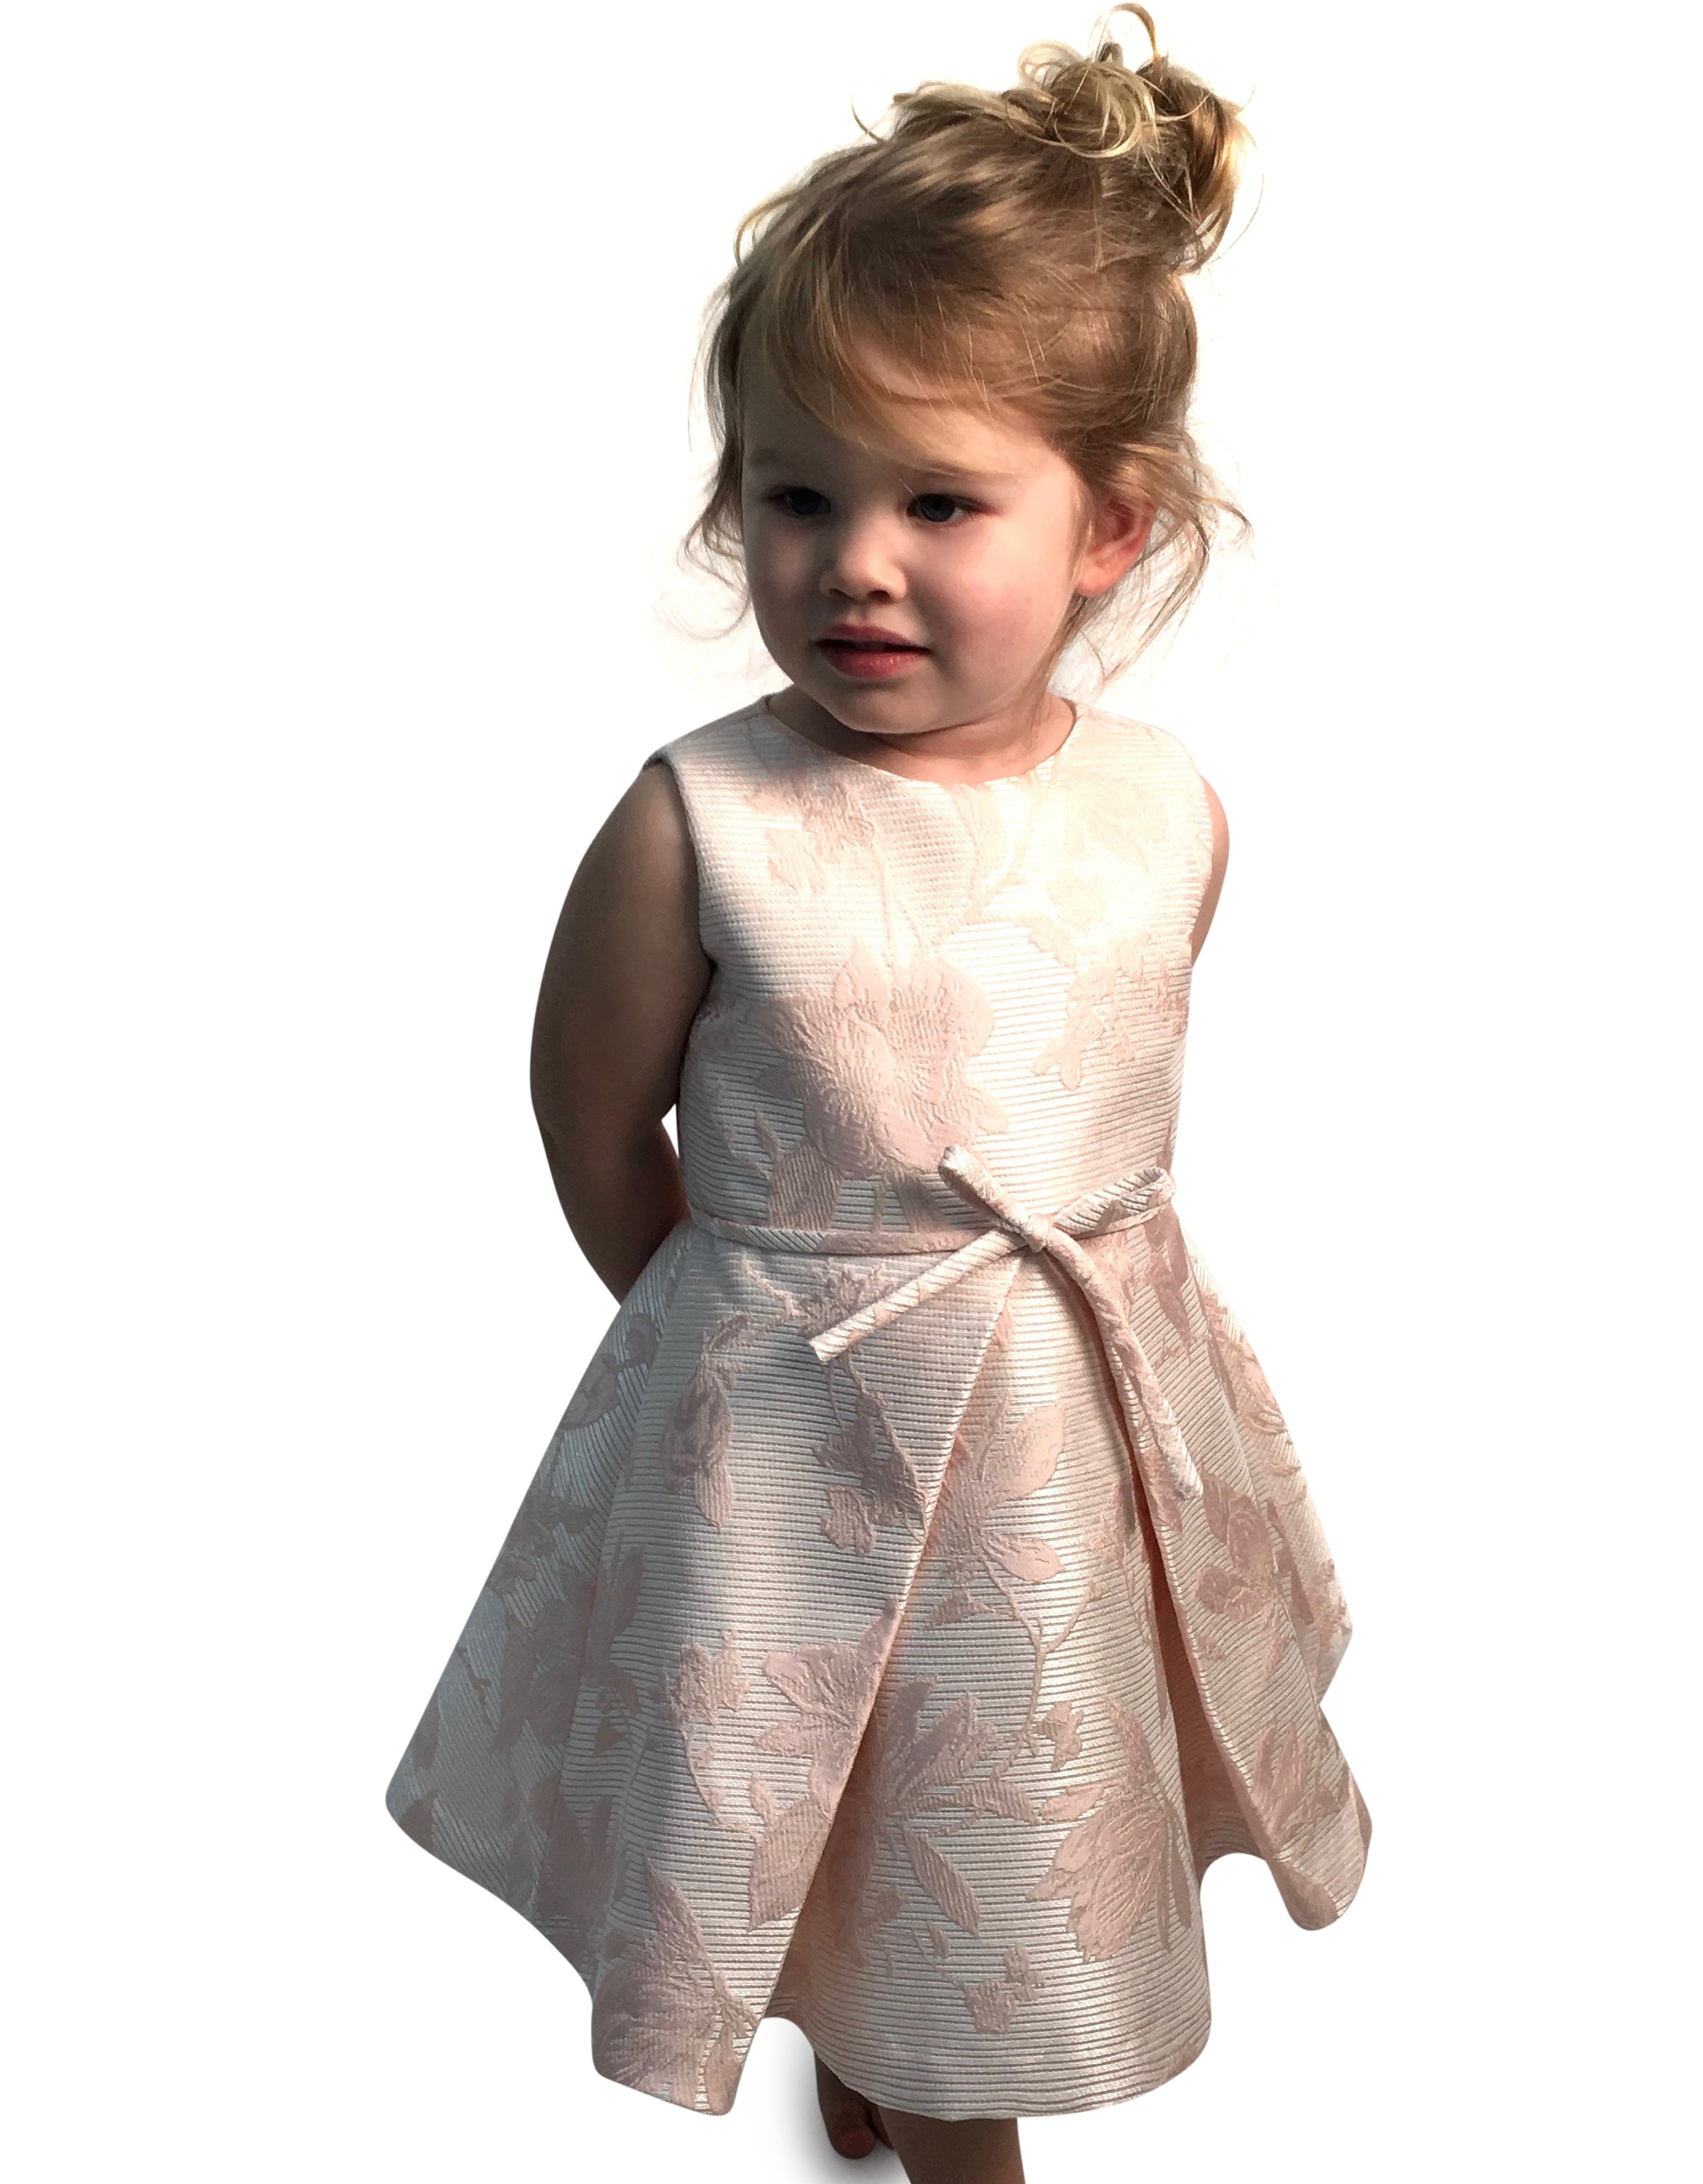 Helena and Harry Girl's Pastel Pink Jacquard Dress